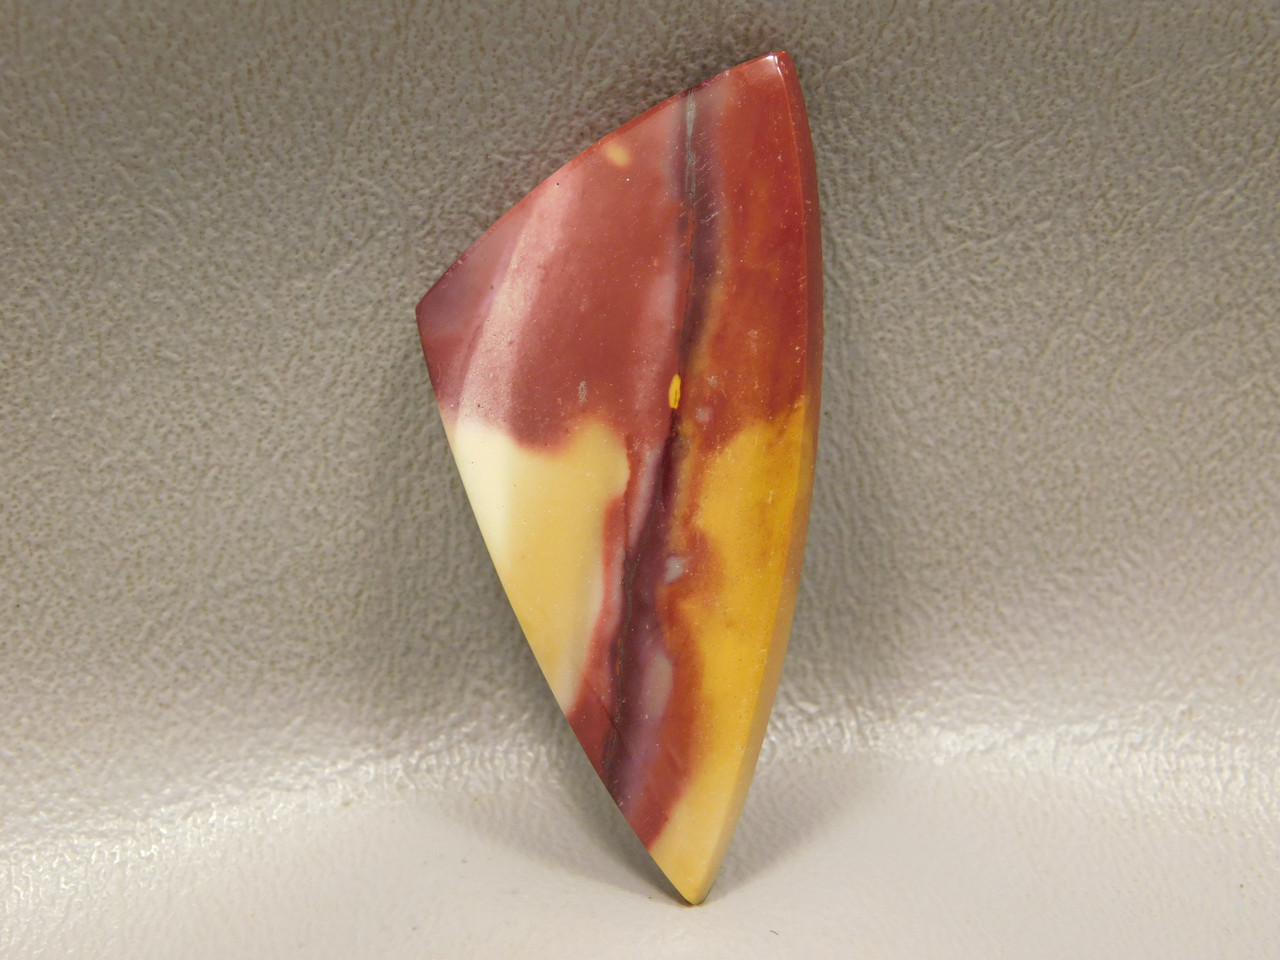 Mookaite Mook Jasper Red Yellow Triangle Gemstone #1